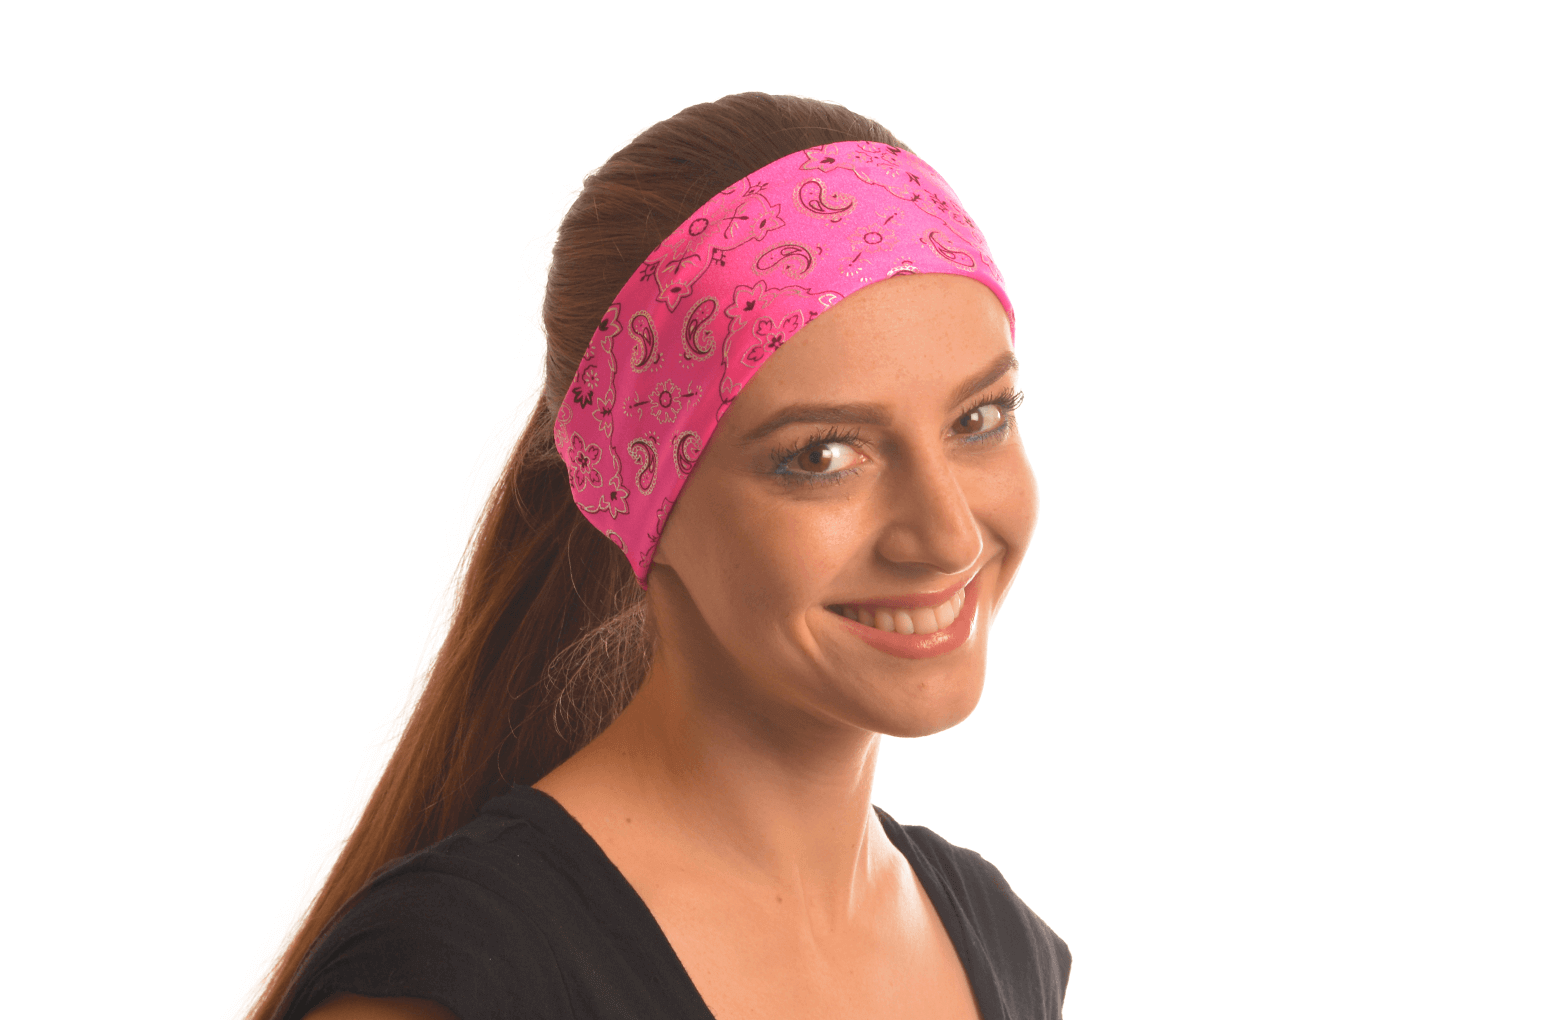 Pink Bandana On Head